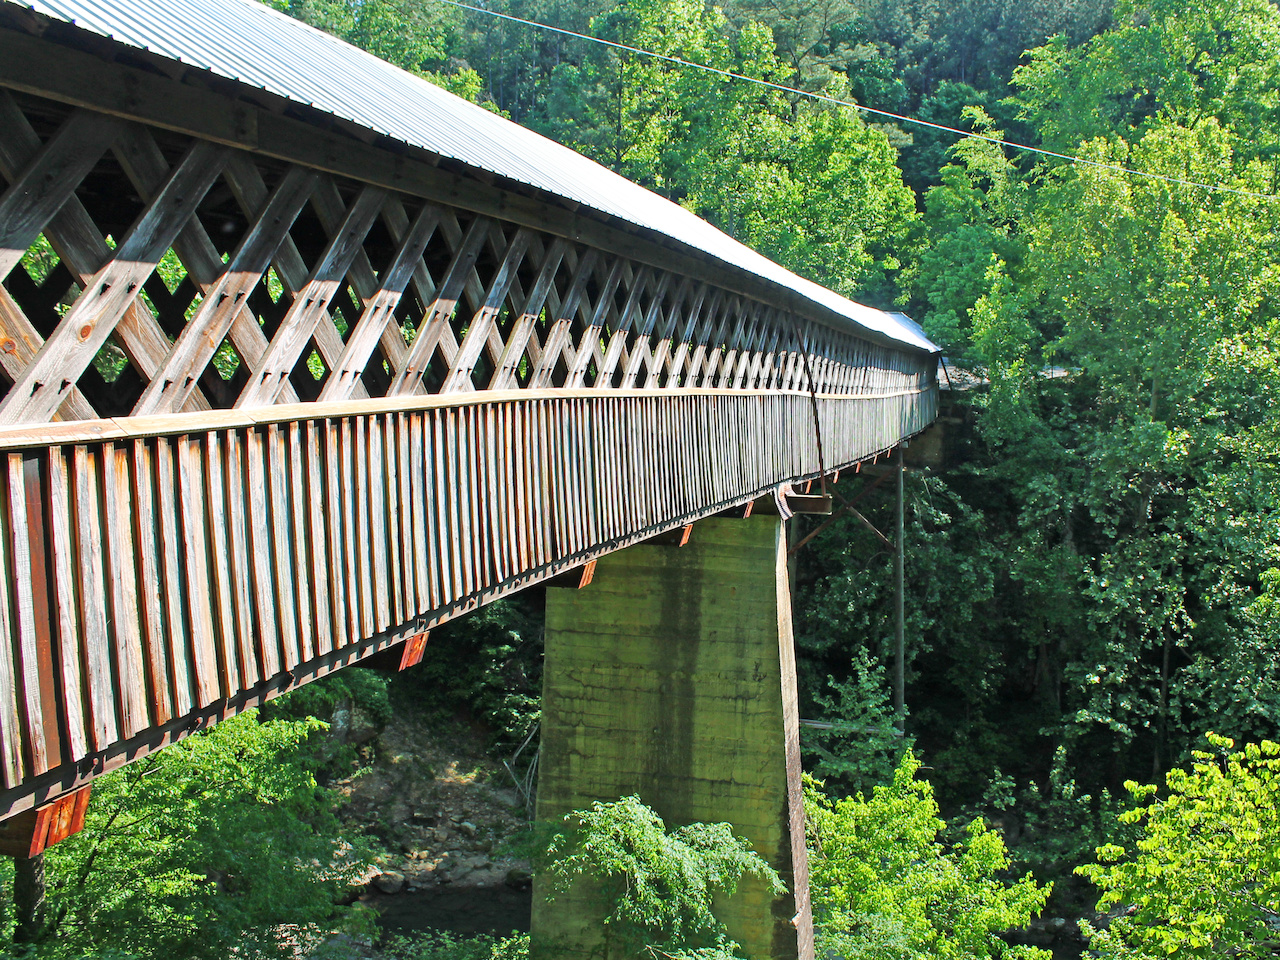 Horton Mill Bridge is the highest covered bridge above any U.S. waterway.